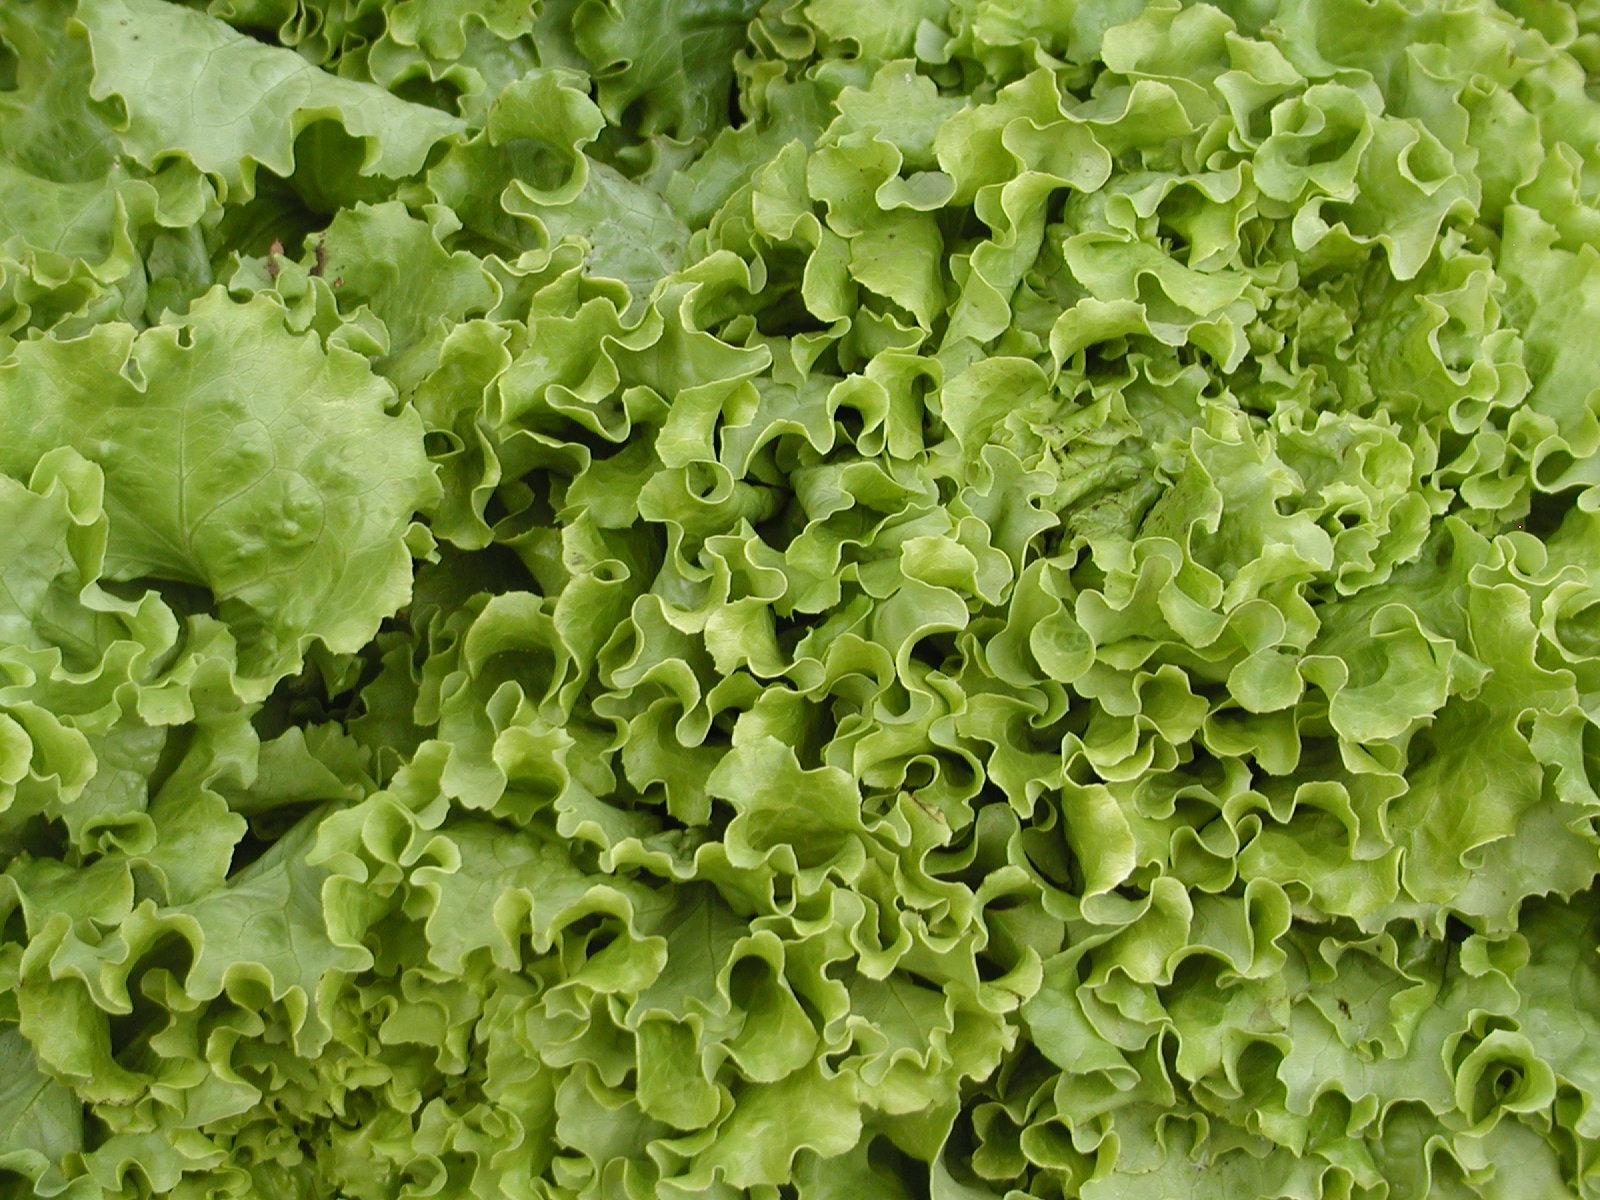 lettuce ready to eat author lucke charlie liked